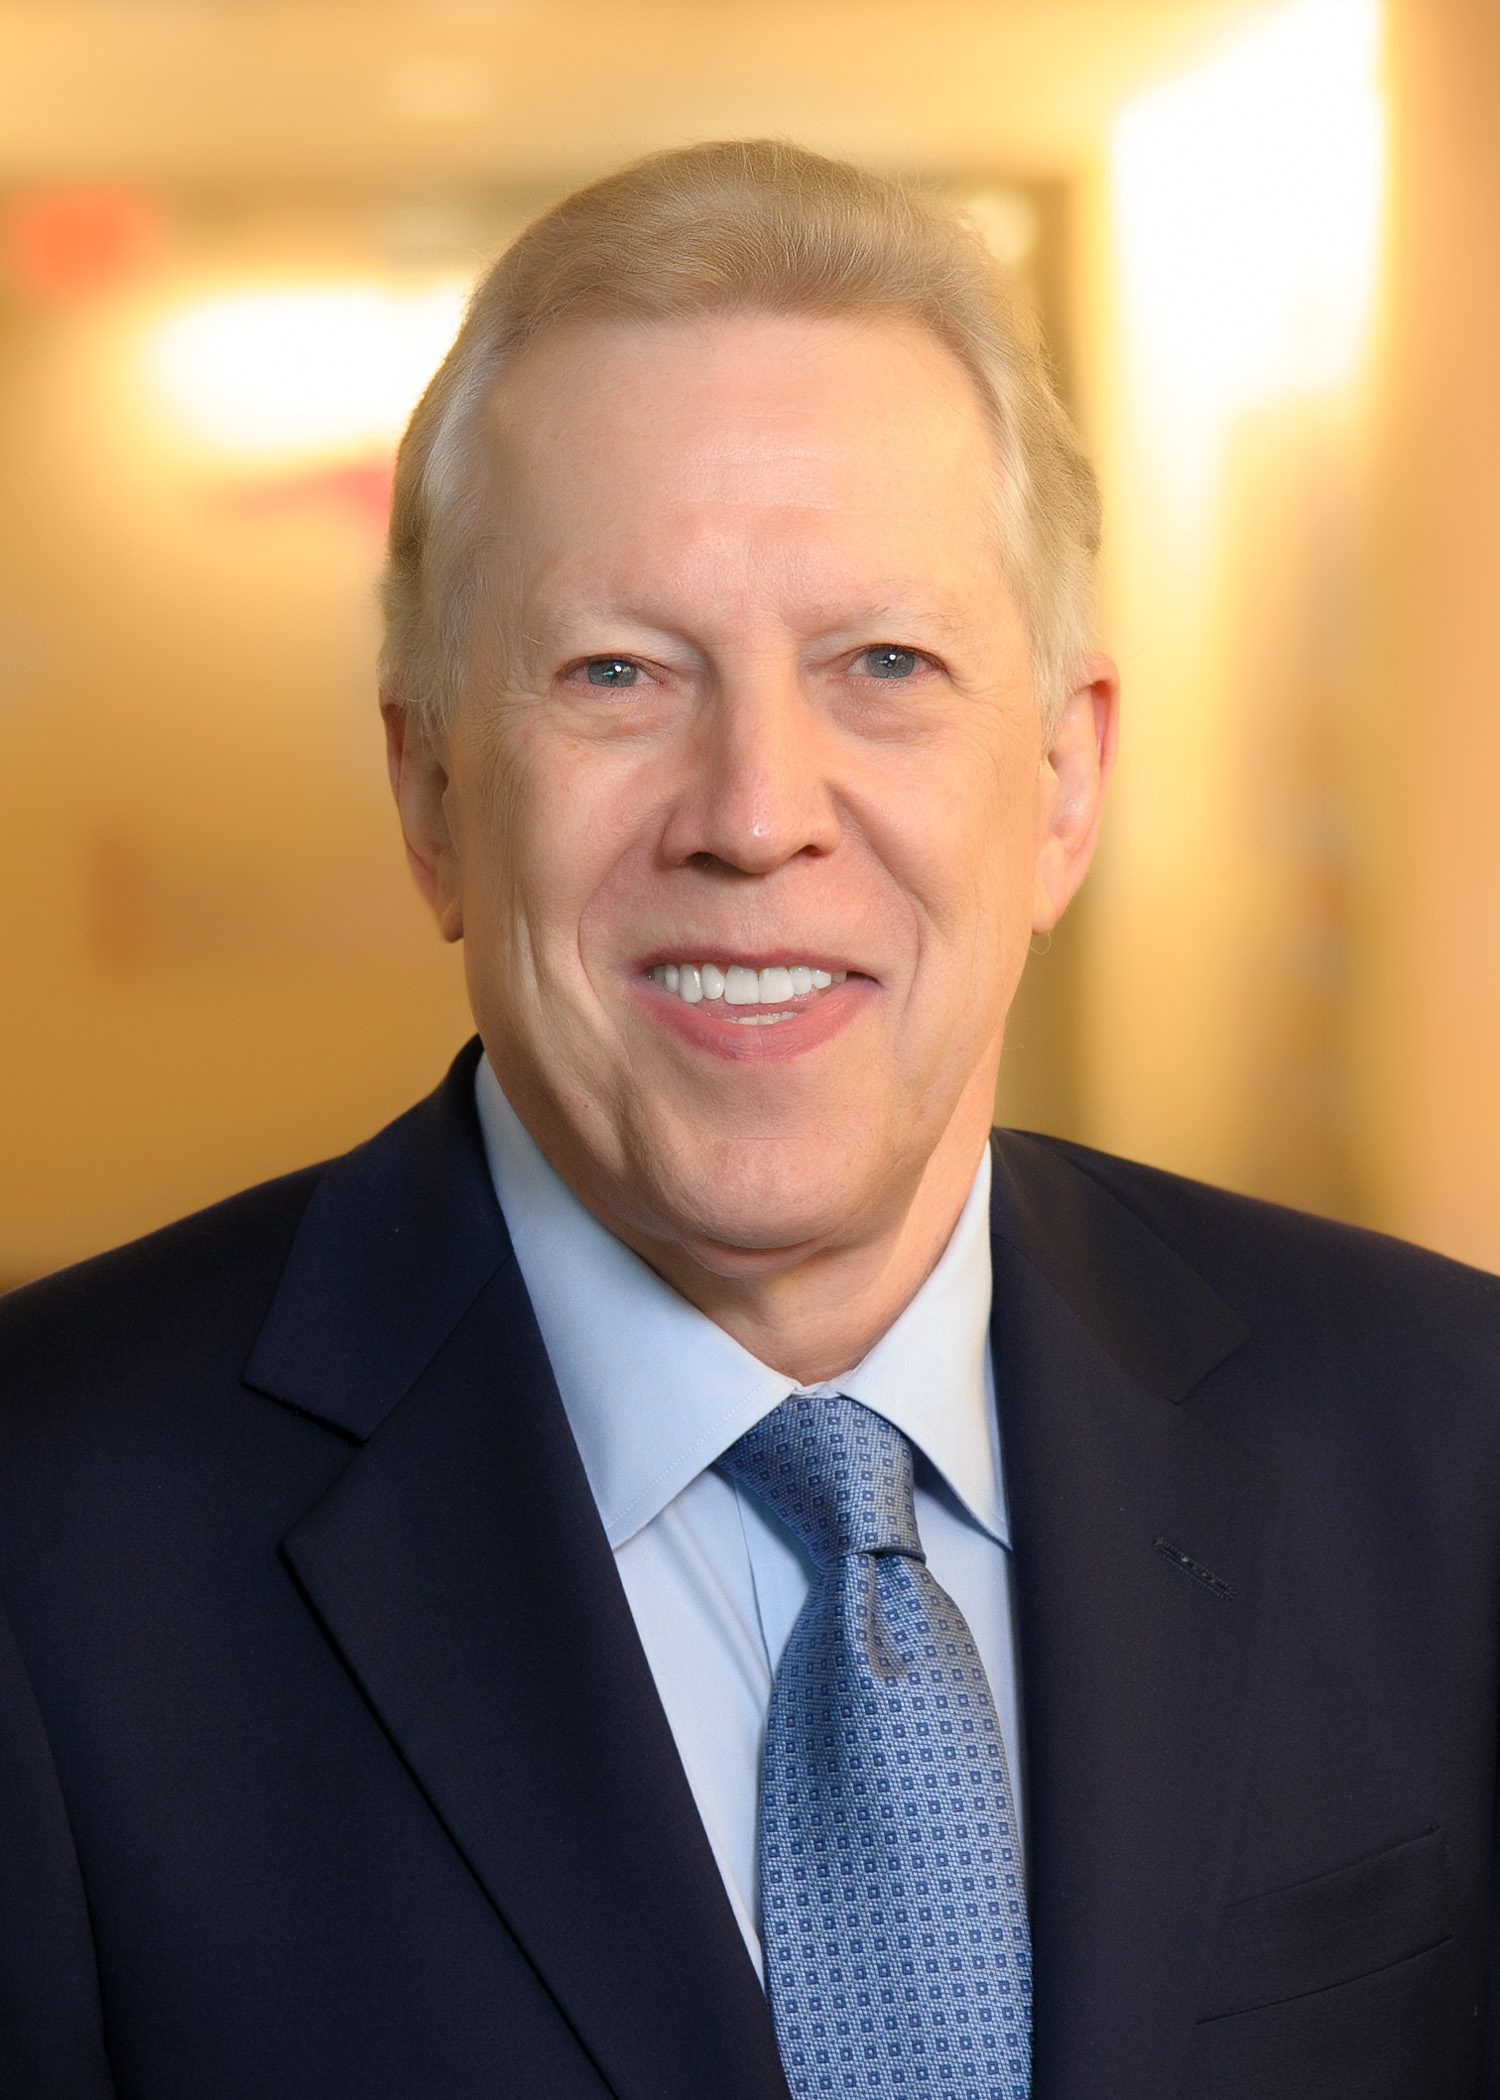 Istation Chairman and CEO, Richard H. Collins